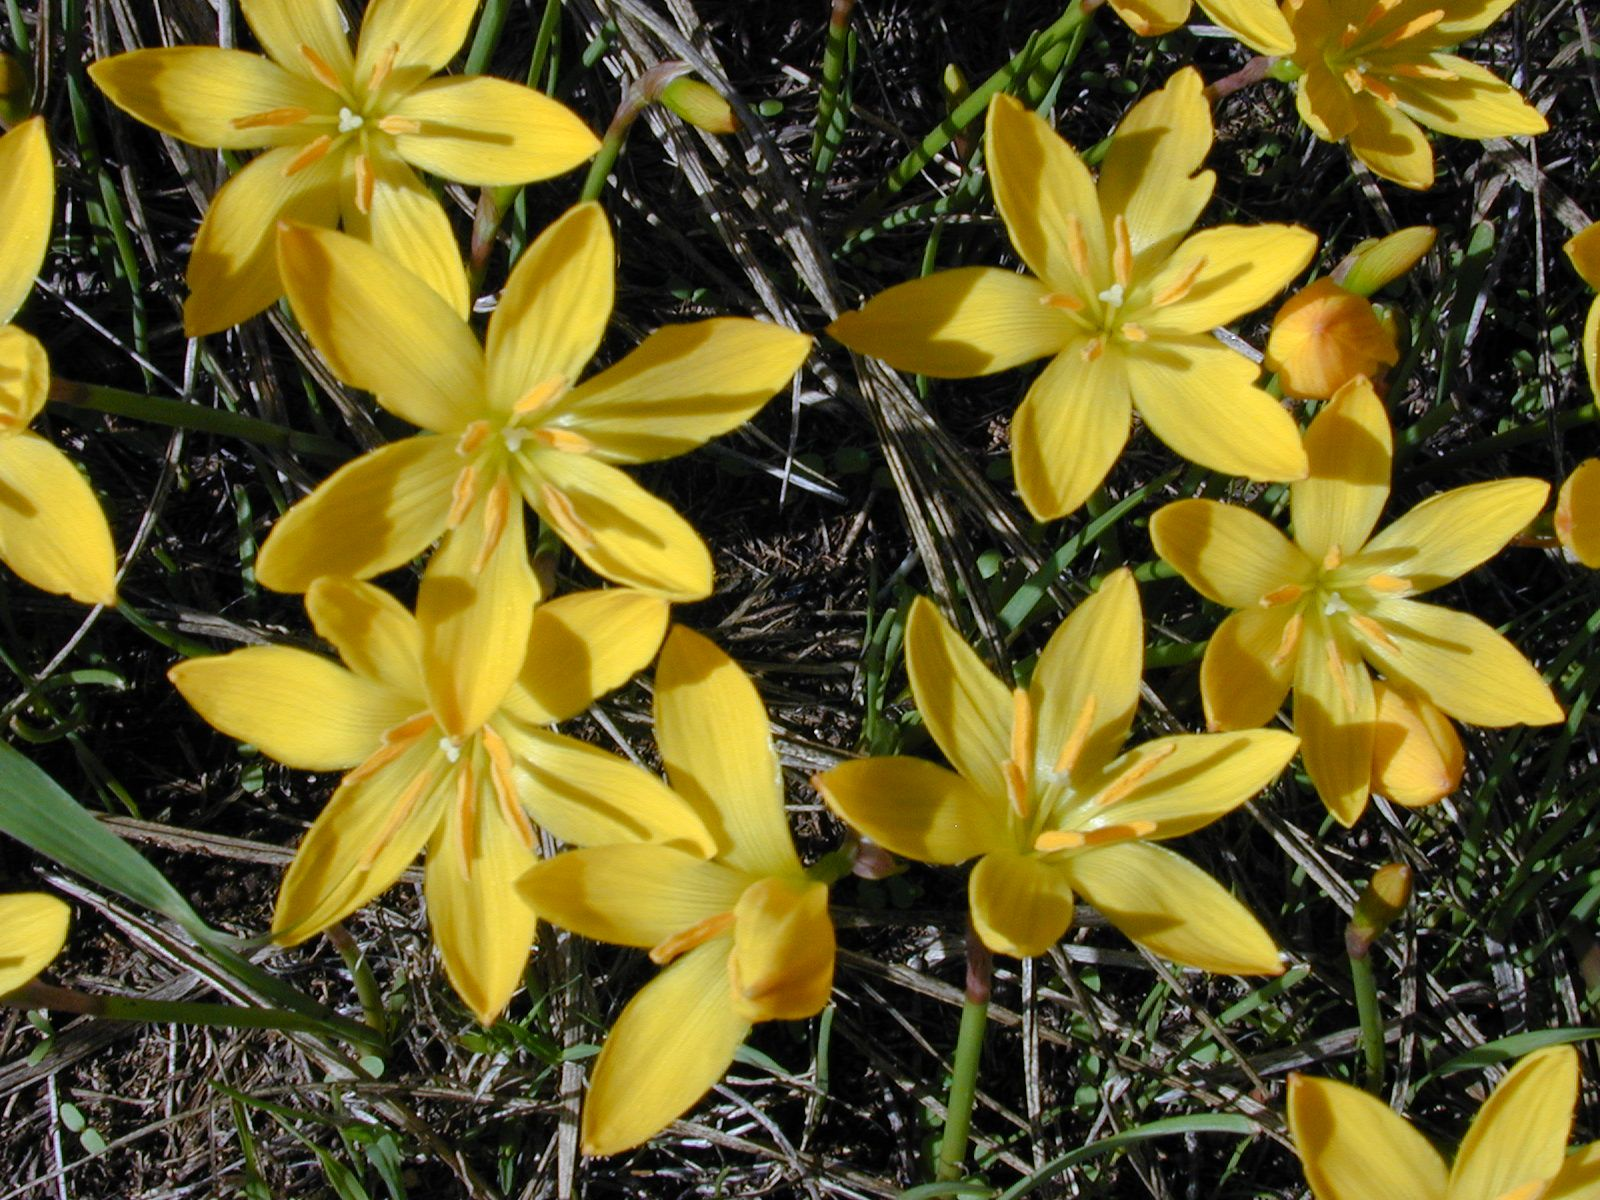 Yellow rain lily zephyranthes citrina non native naturalized yellow rain lily zephyranthes citrina non native naturalized flowering plant found izmirmasajfo Image collections